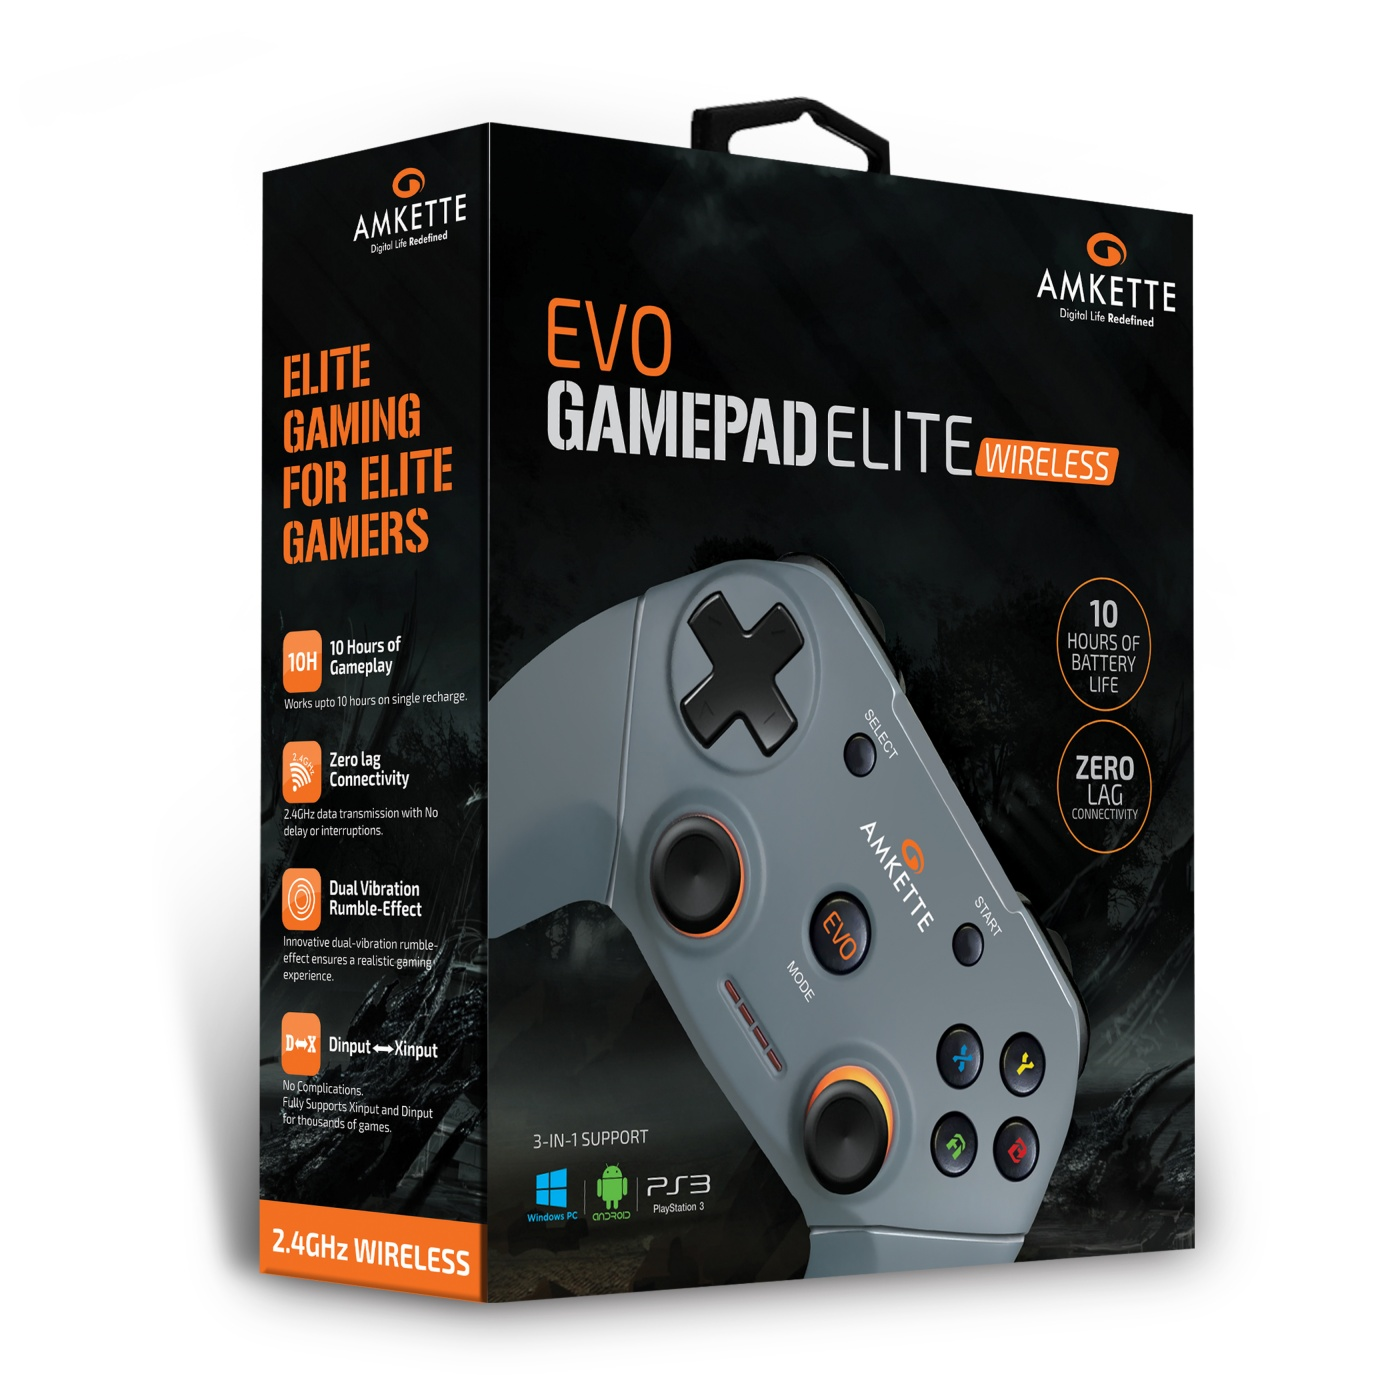 EVO Elite Wireless | Wireless PC Gamepad | Amkette com